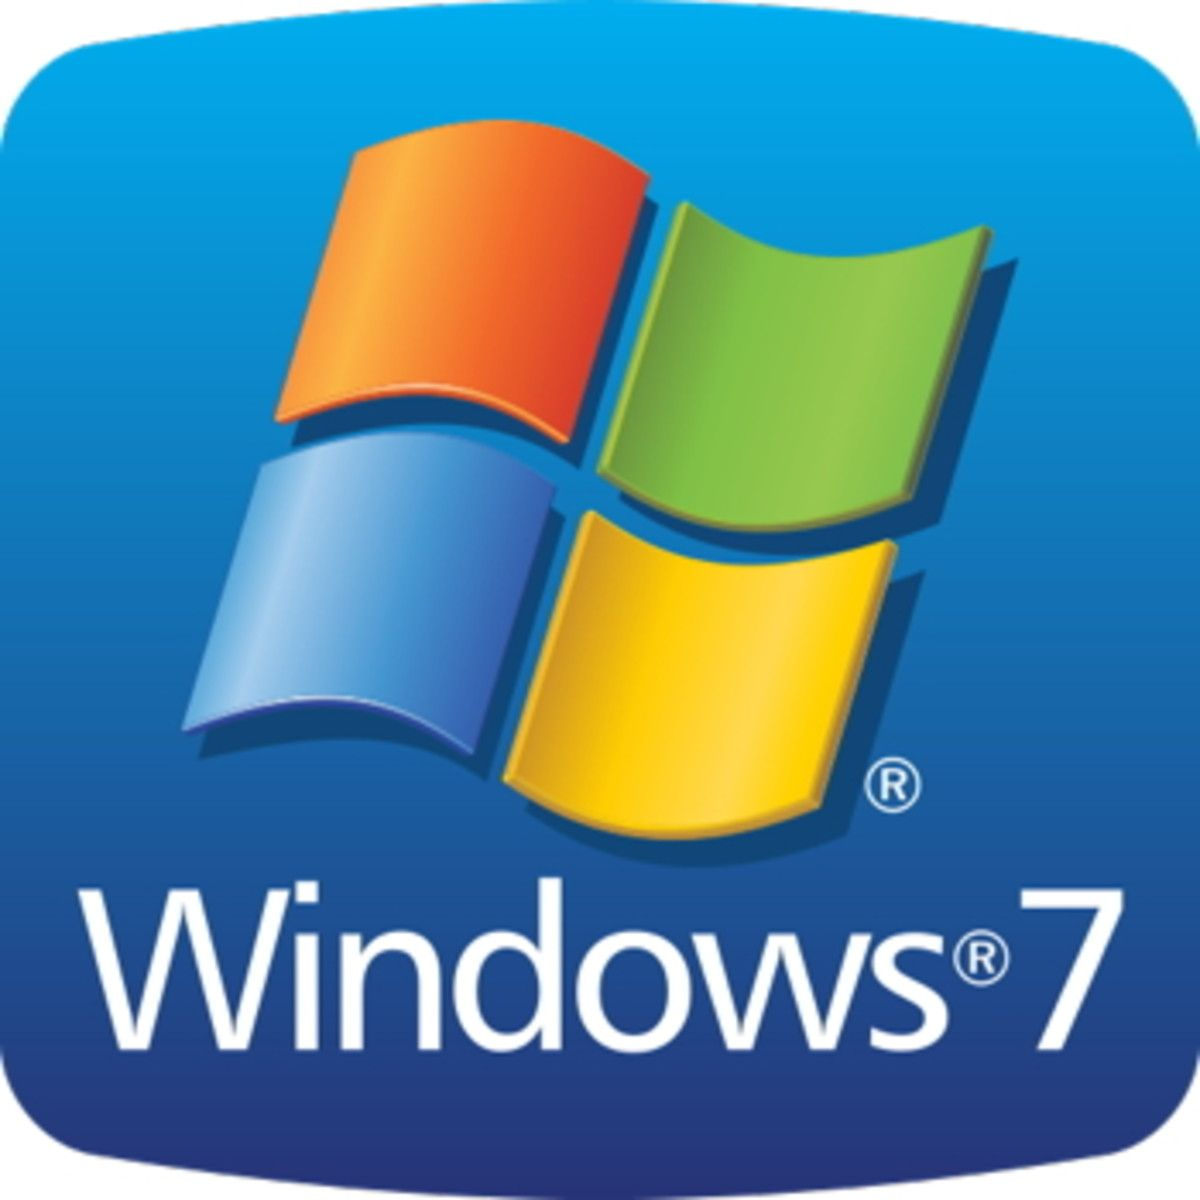 Windows 7 Logo - Sales of Windows 7 computers to end in October 2014 - PC Retail